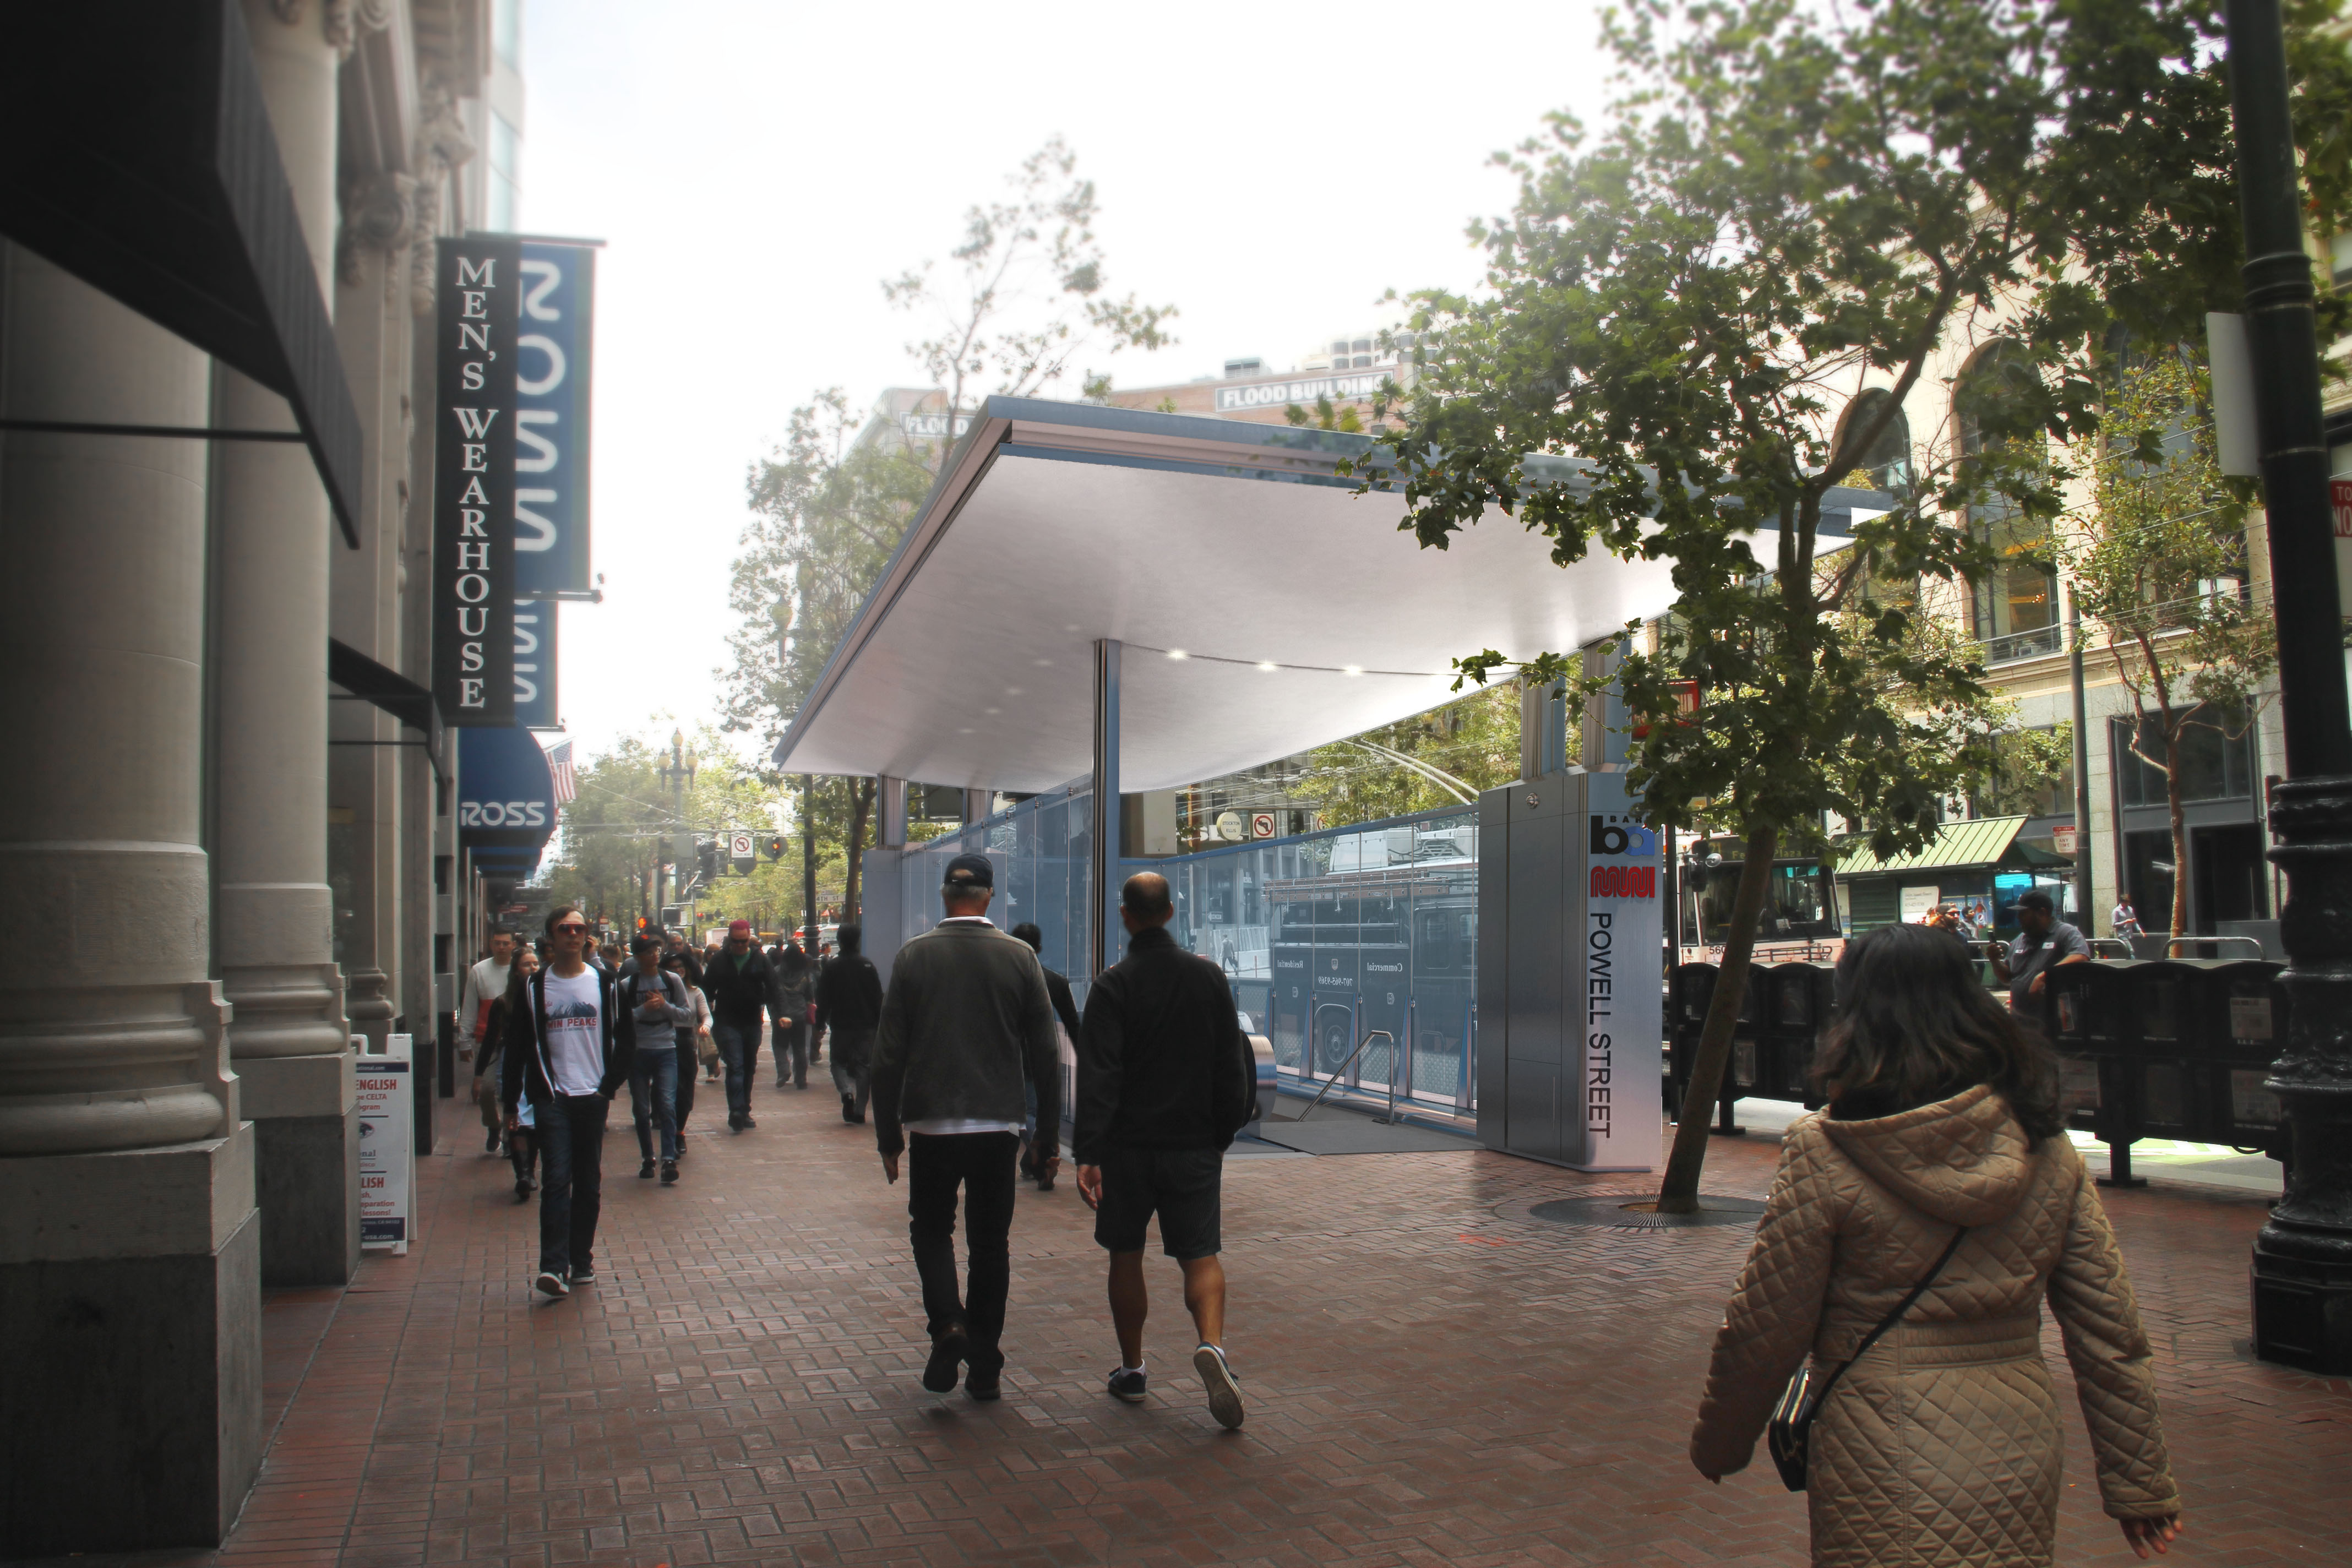 BART Street Entry Canopy, Powell St. and Civic Center Stations